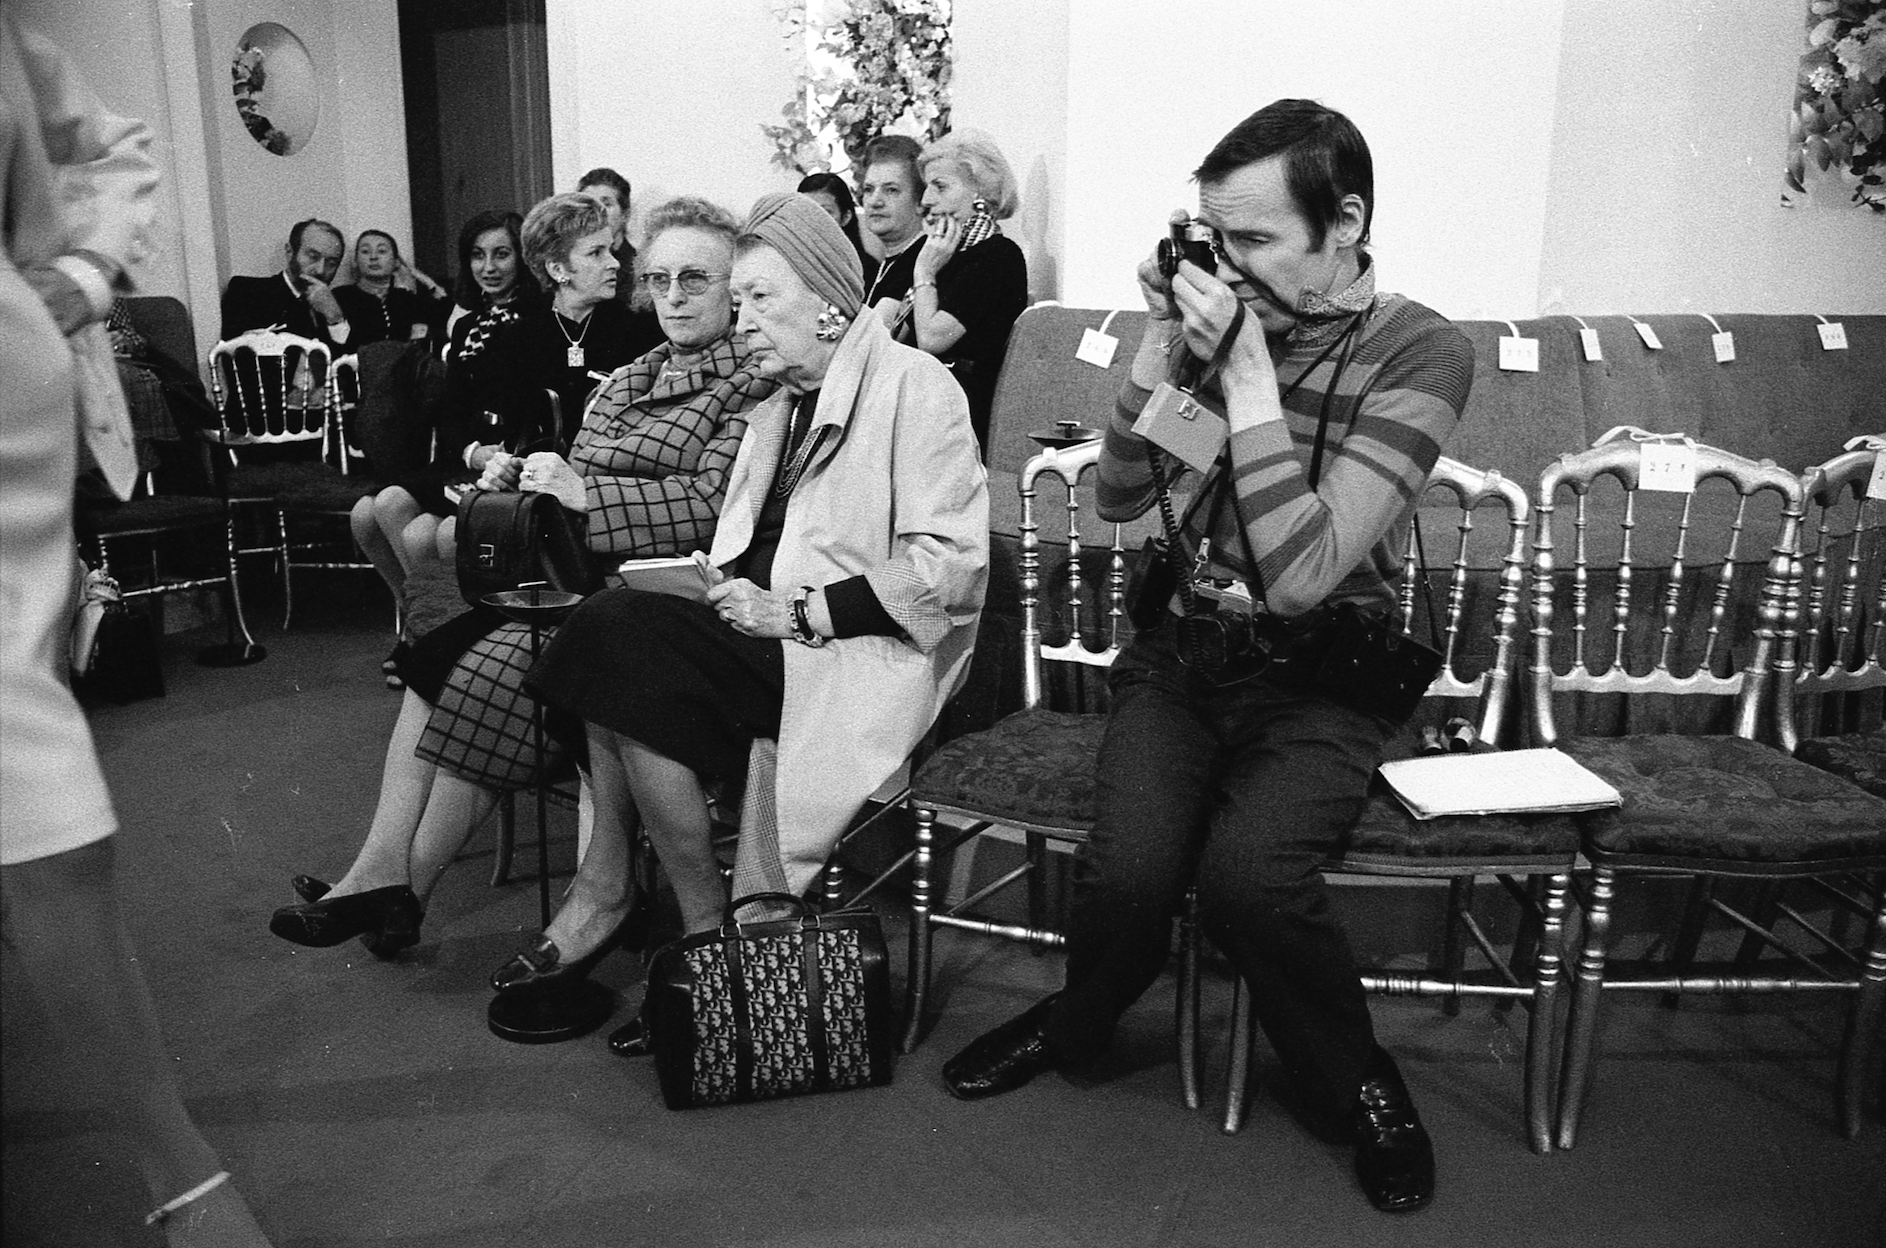 AUDIENCE AWARD: THE TIMES OF BILL CUNNINGHAM